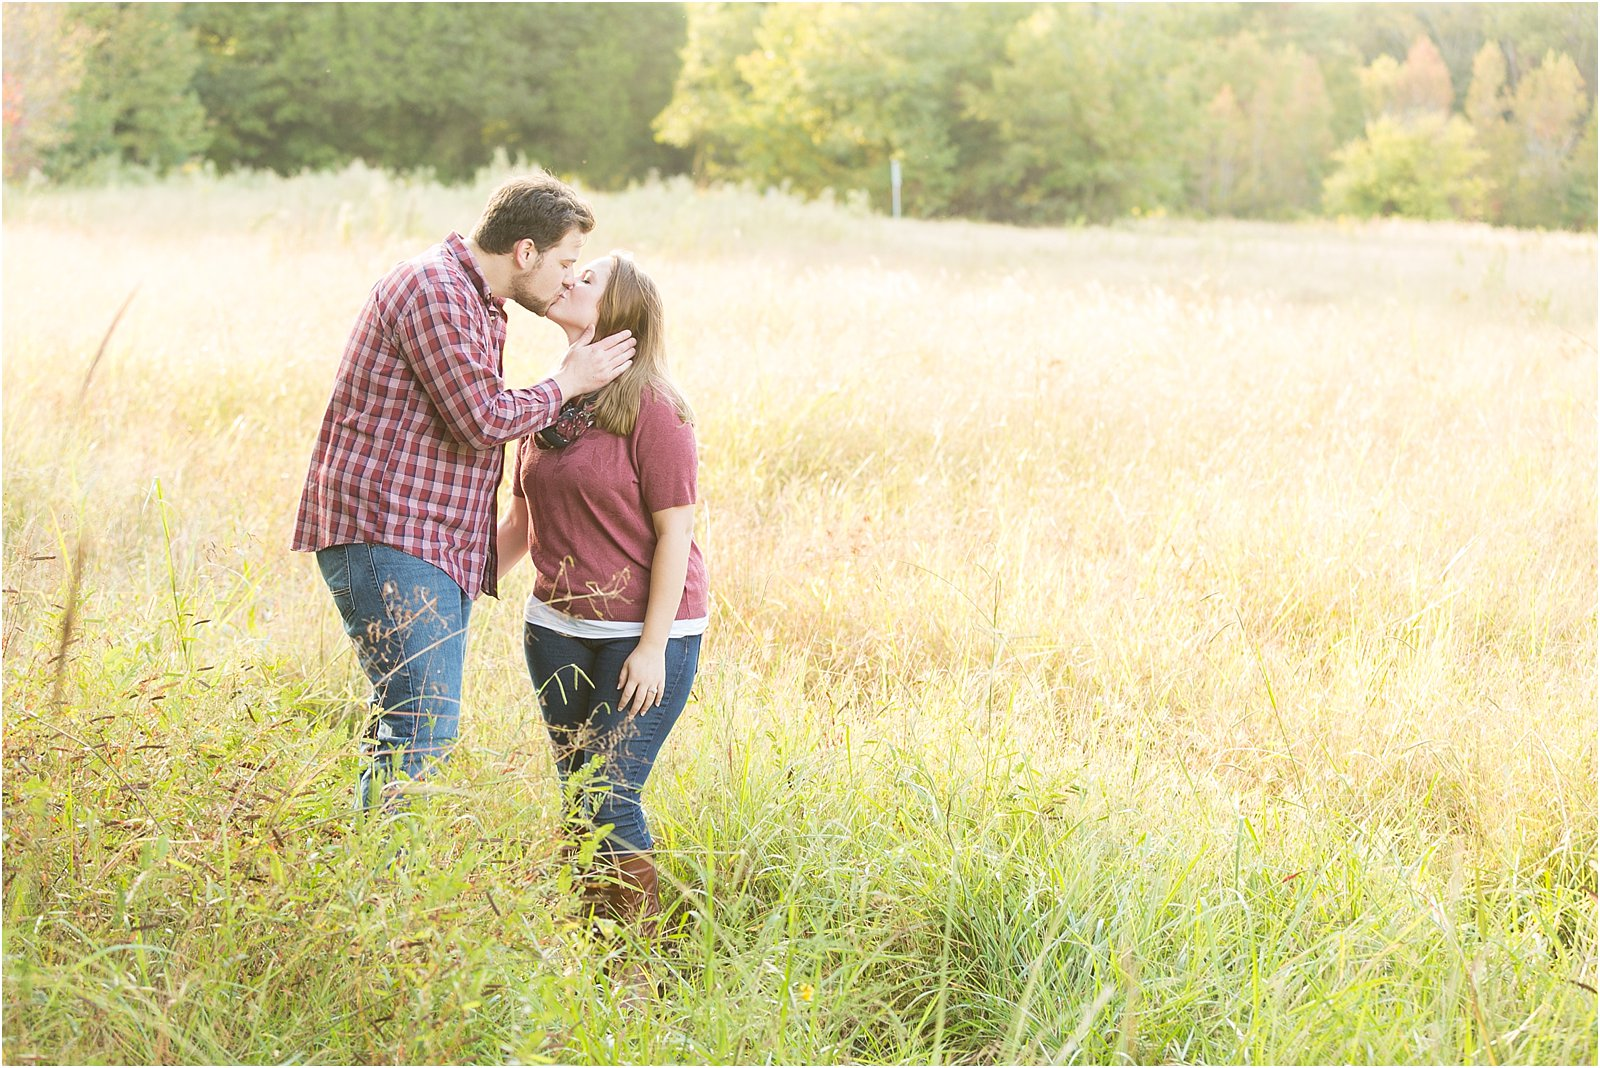 jessica_ryan_photography_pumpkin_patch_engagement_portraits_fall_october_engagements_virginia_beach_chesapeake_0300